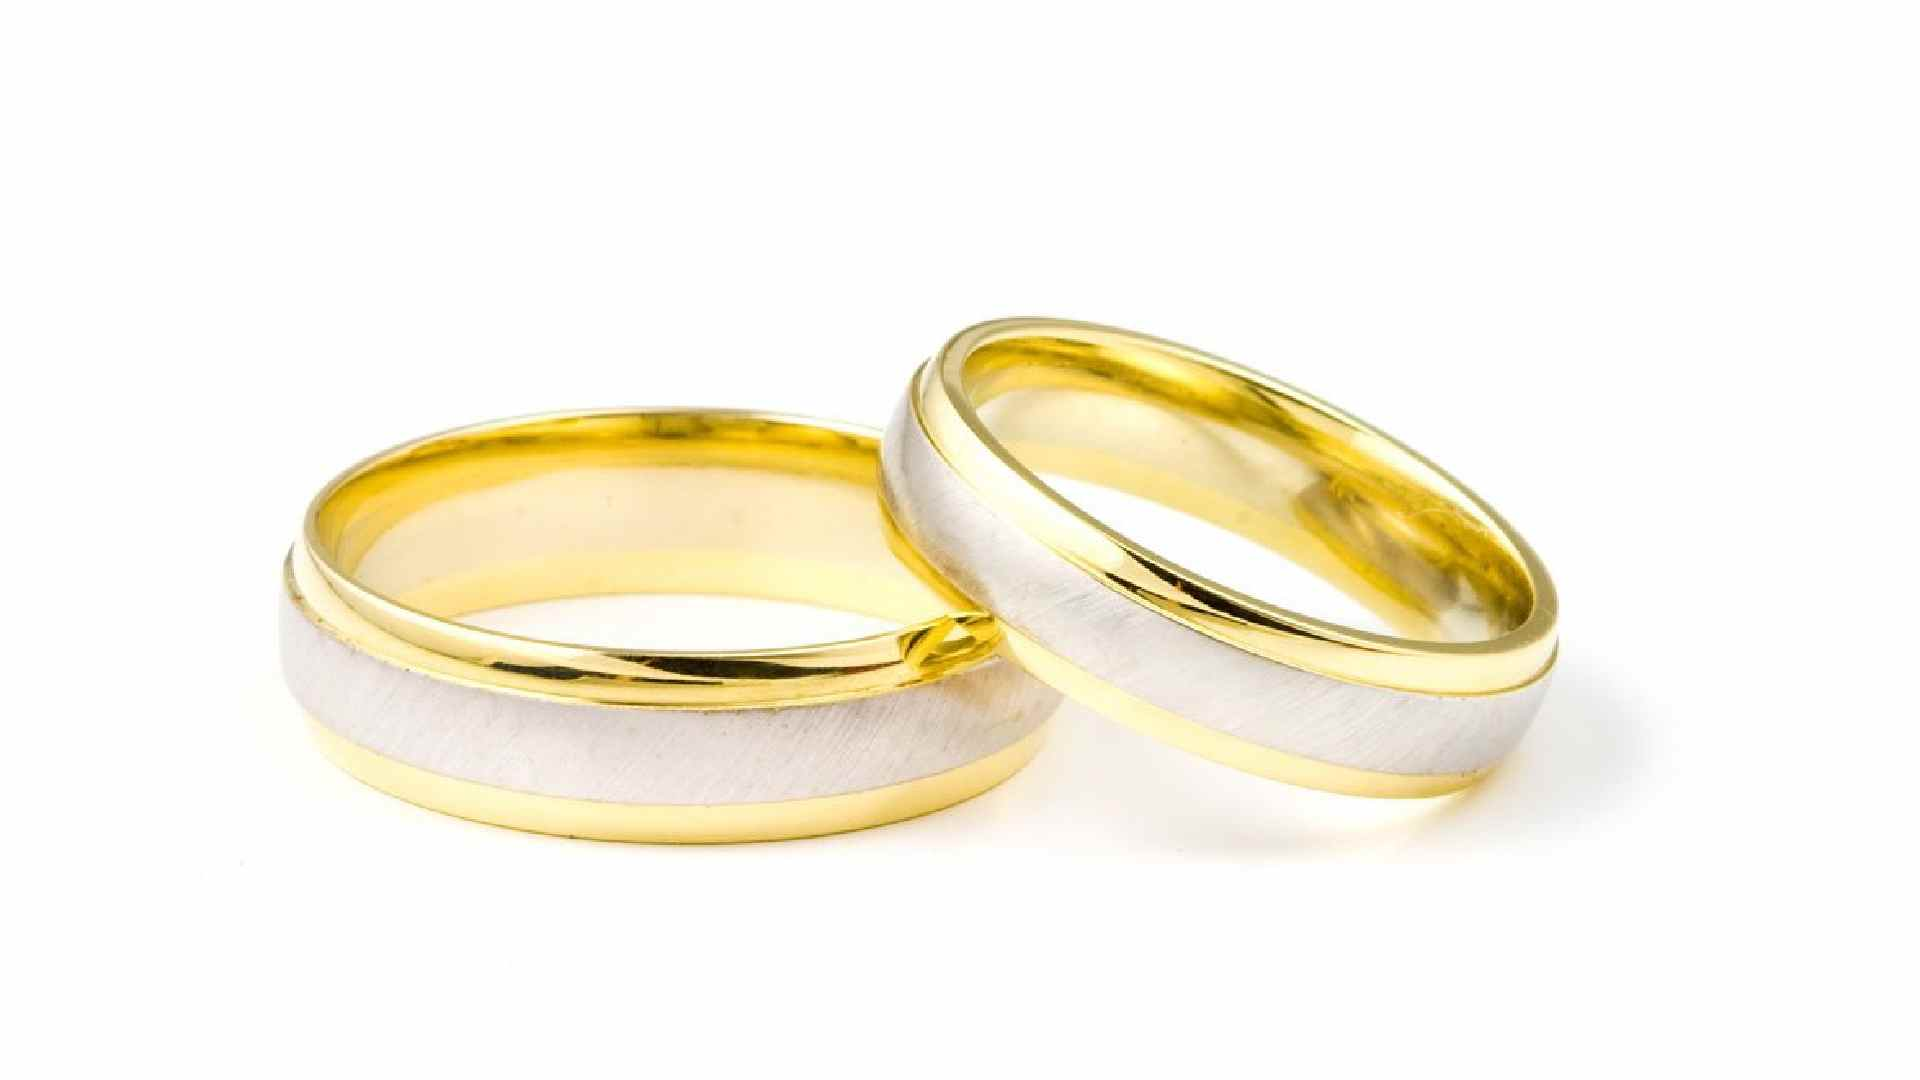 Why People Still Wear Wedding Rings Today